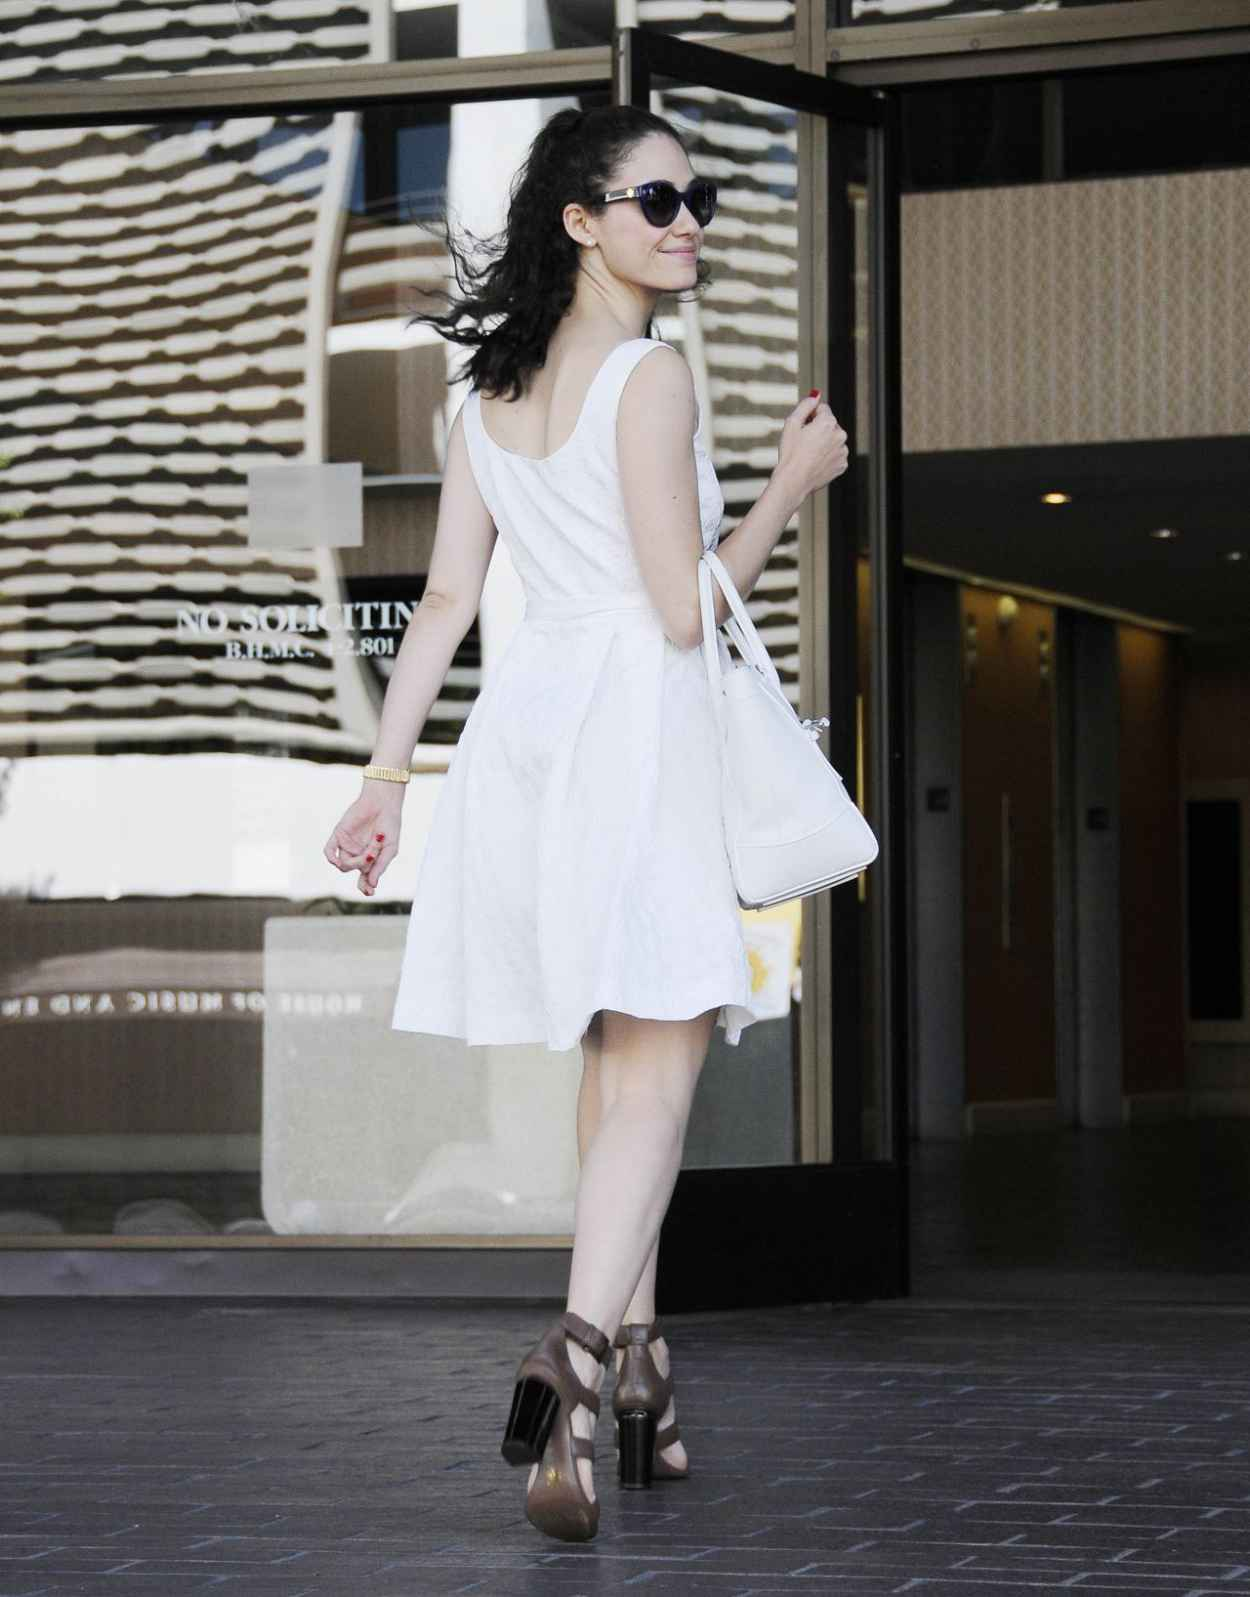 Emmy Rossum Summer Style 2015 - Out and About in Beverly Hills-4